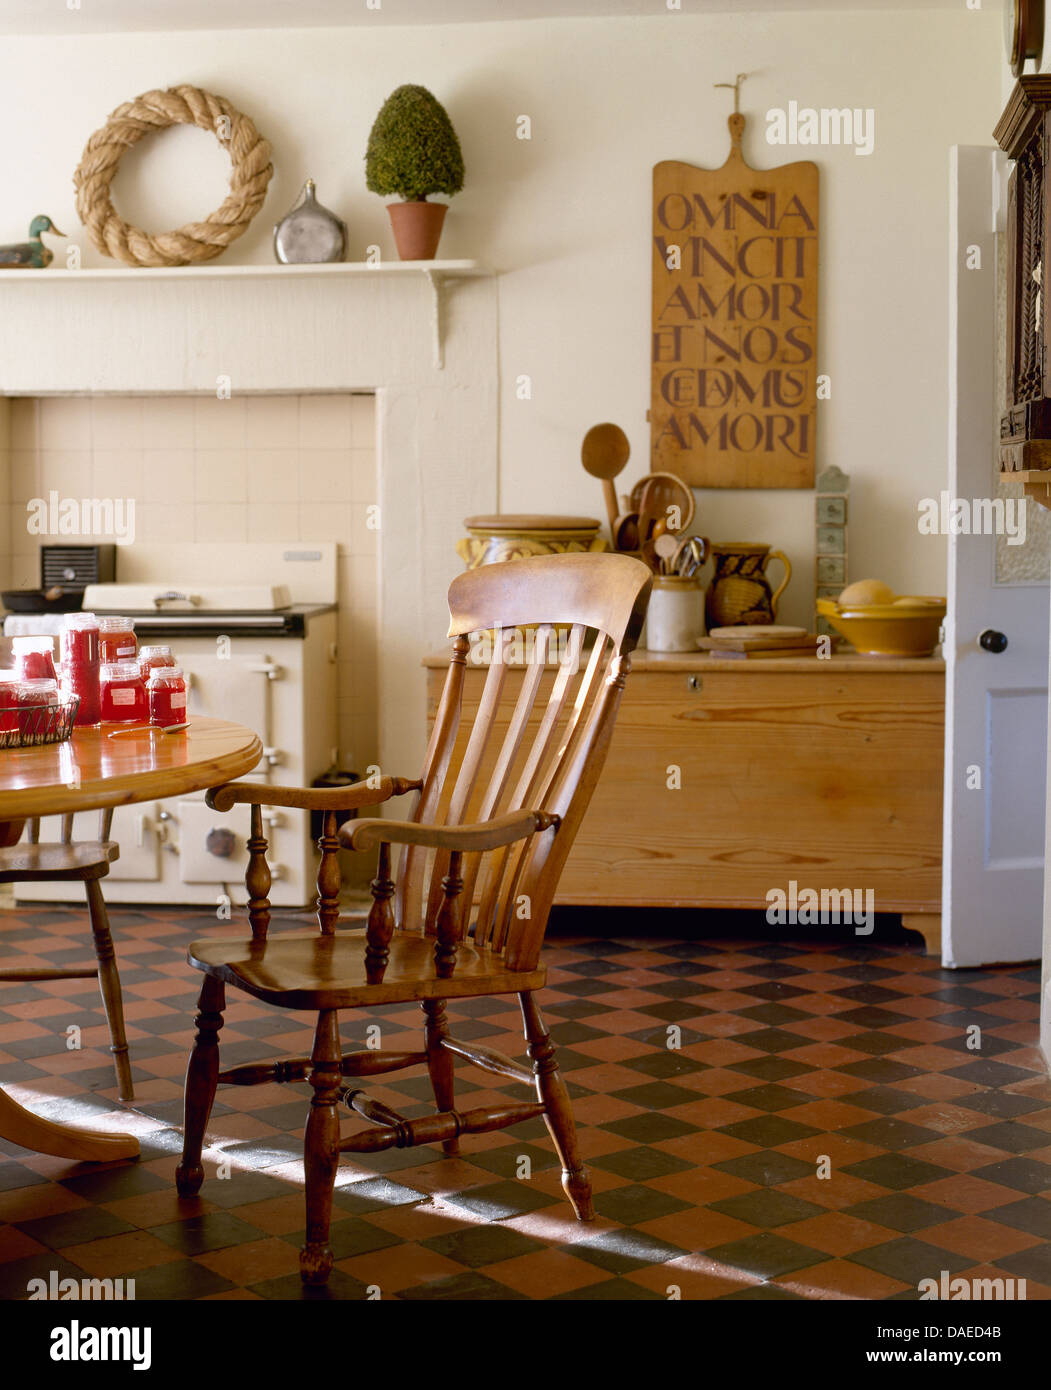 Antique Windsor chair in country kitchen with original black+red tiled  floor and wooden sign board above old pine chest - Antique Windsor Chair In Country Kitchen With Original Black+red